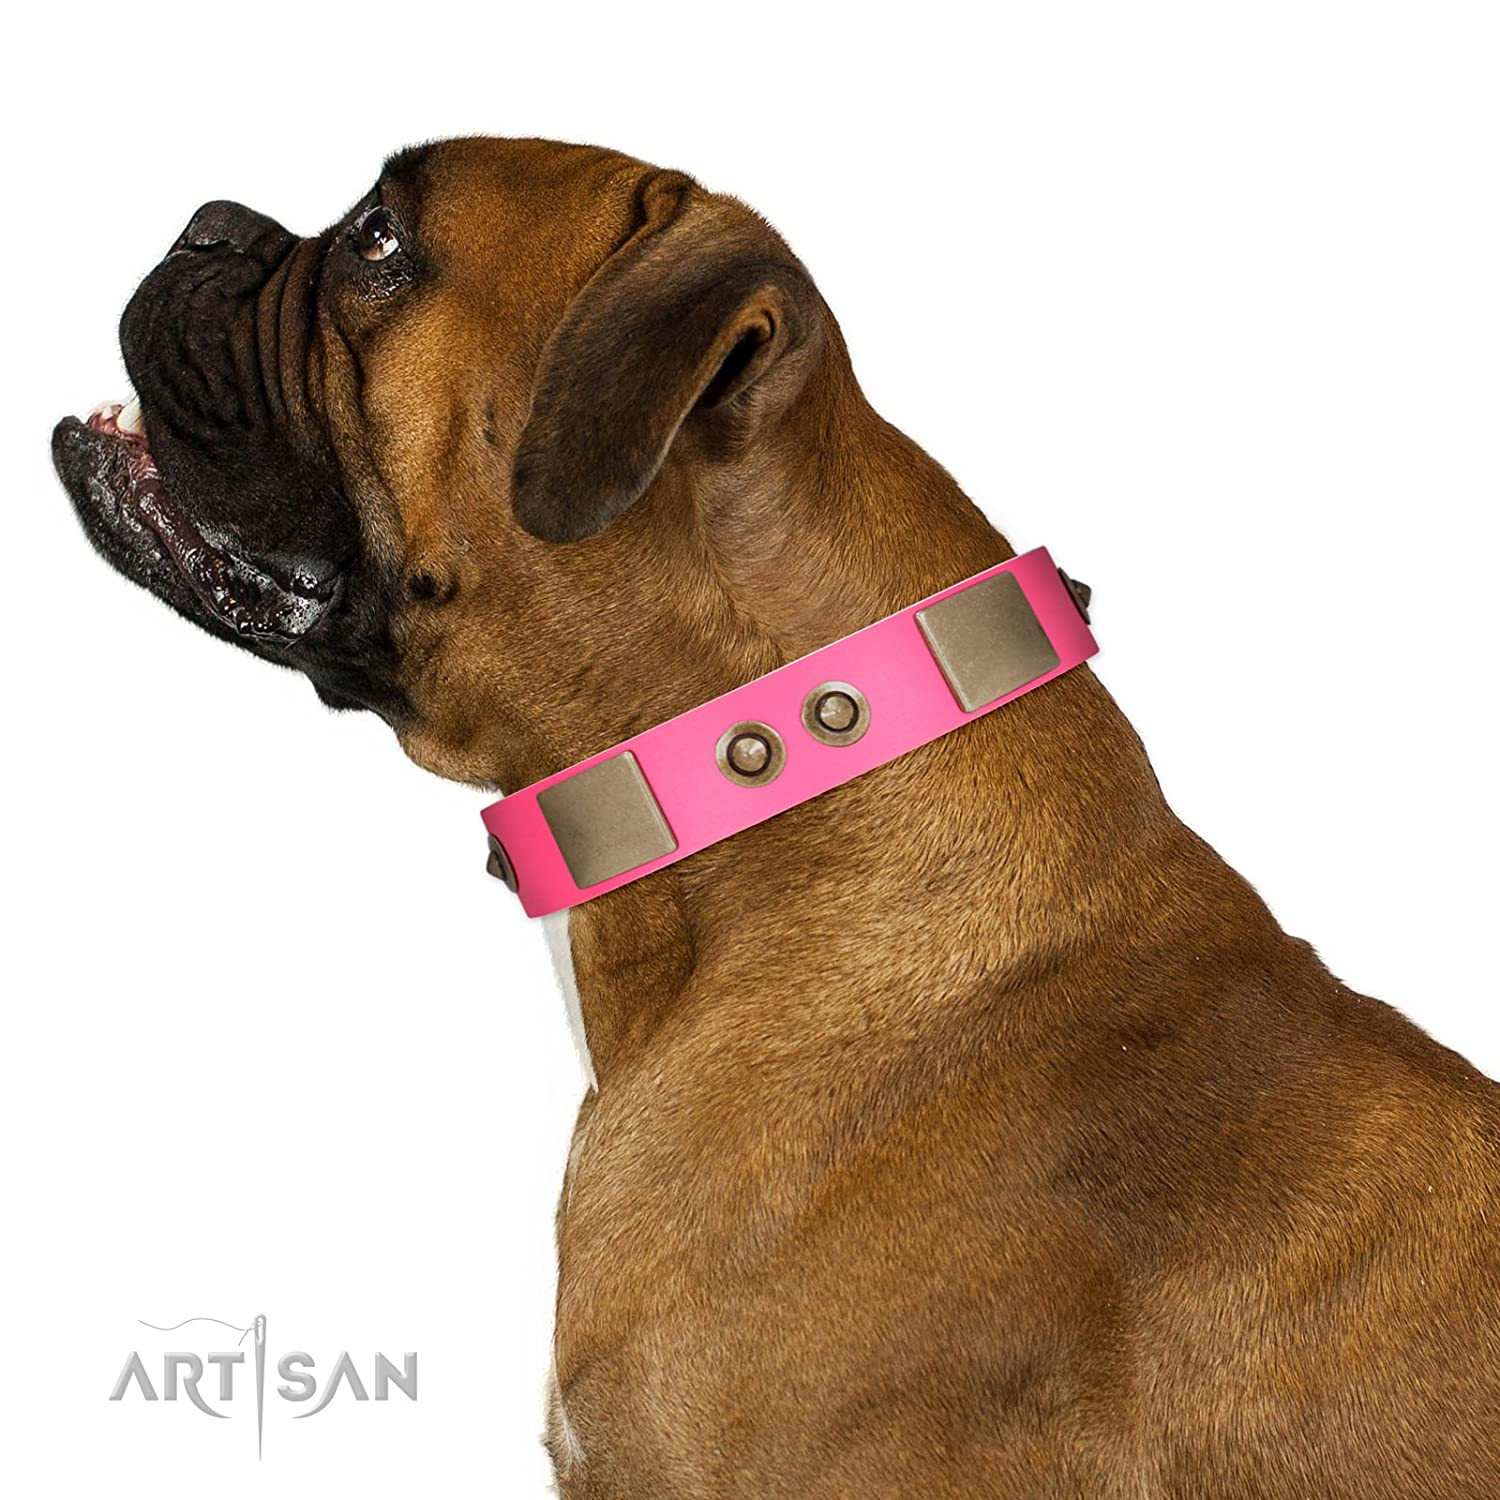 Fits for 25 inch (63cm) dog's neck size FDT Artisan Pink Splash Soft Leather Dog Collar with Bronze-Like Plates and Medallions 1 1 2 inch (40 mm) Wide